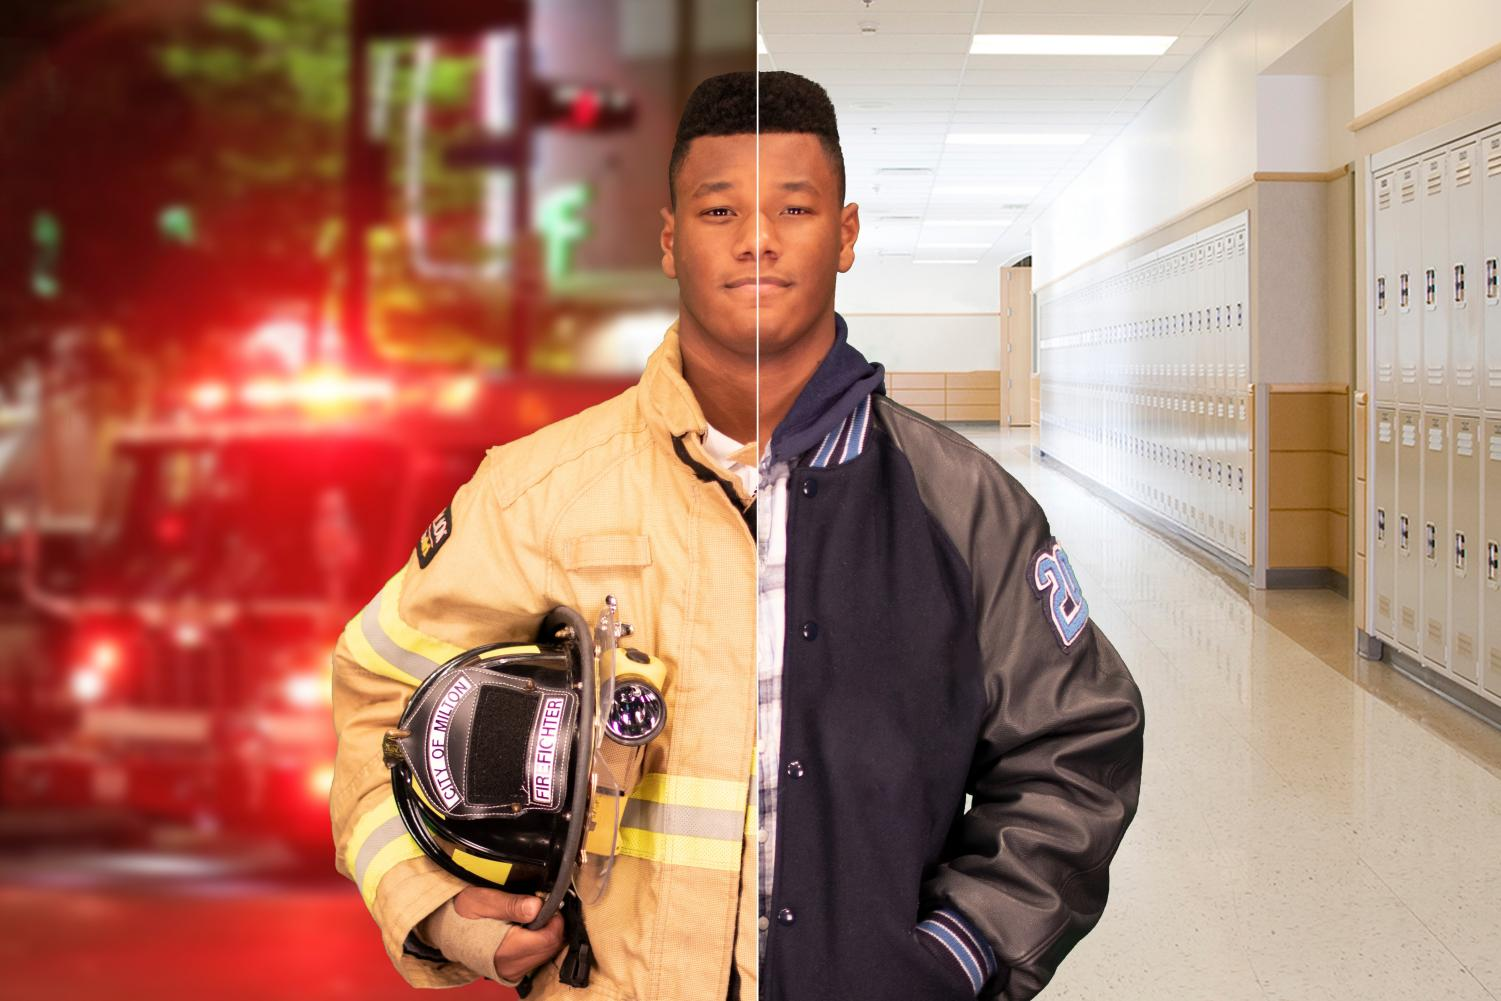 Sophomore Philip-Michael Collins is shown here as both a regular student and a certified firefighter.